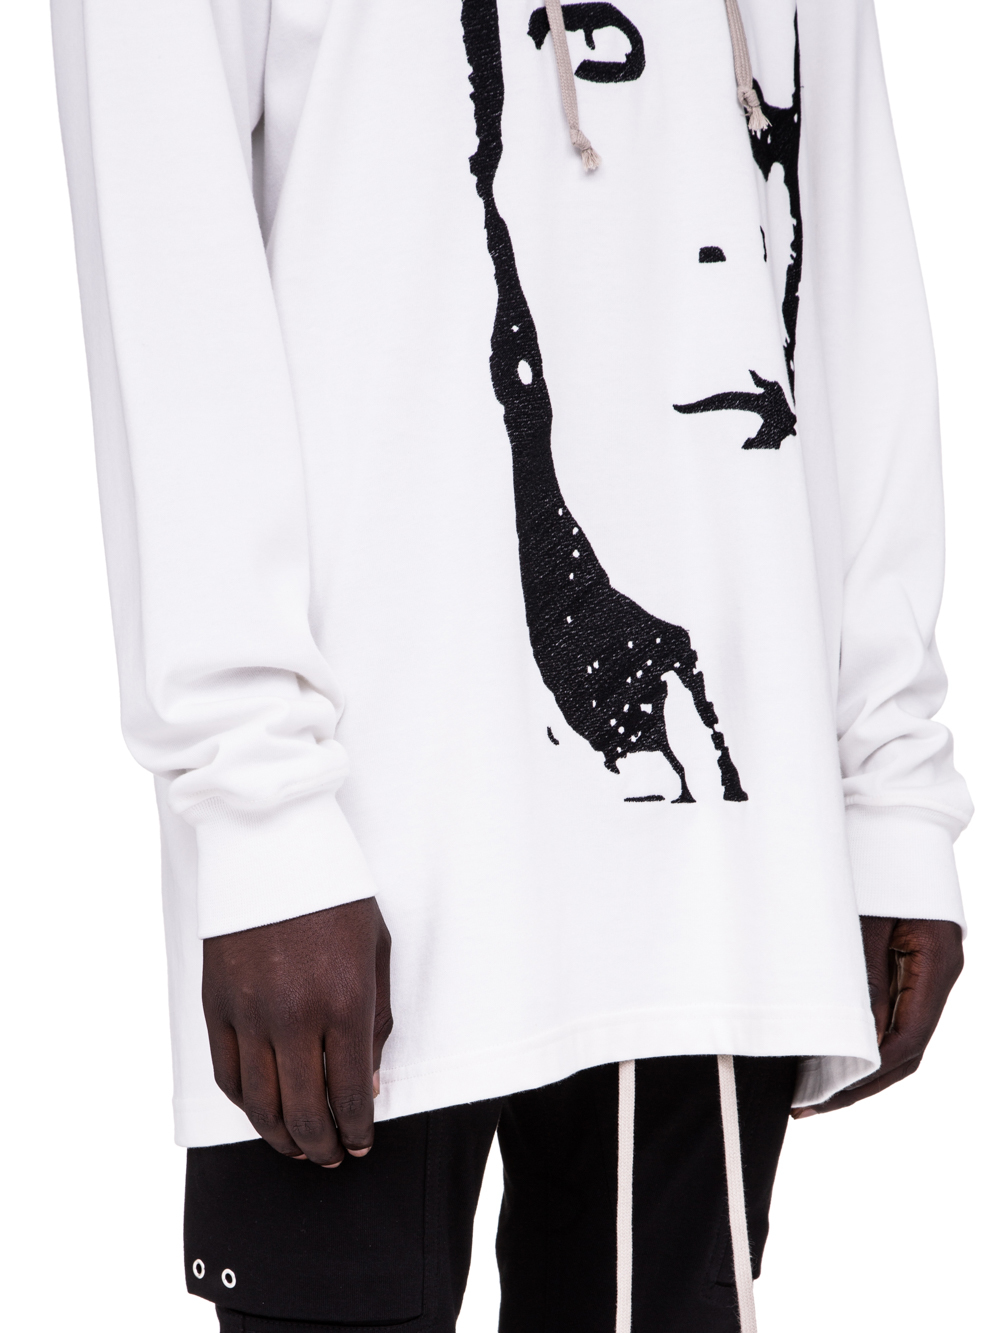 RICK OWENS SS19 BABEL HOODIE WITH A KEMBRA EMBROIDERY IN WHITE COTTON